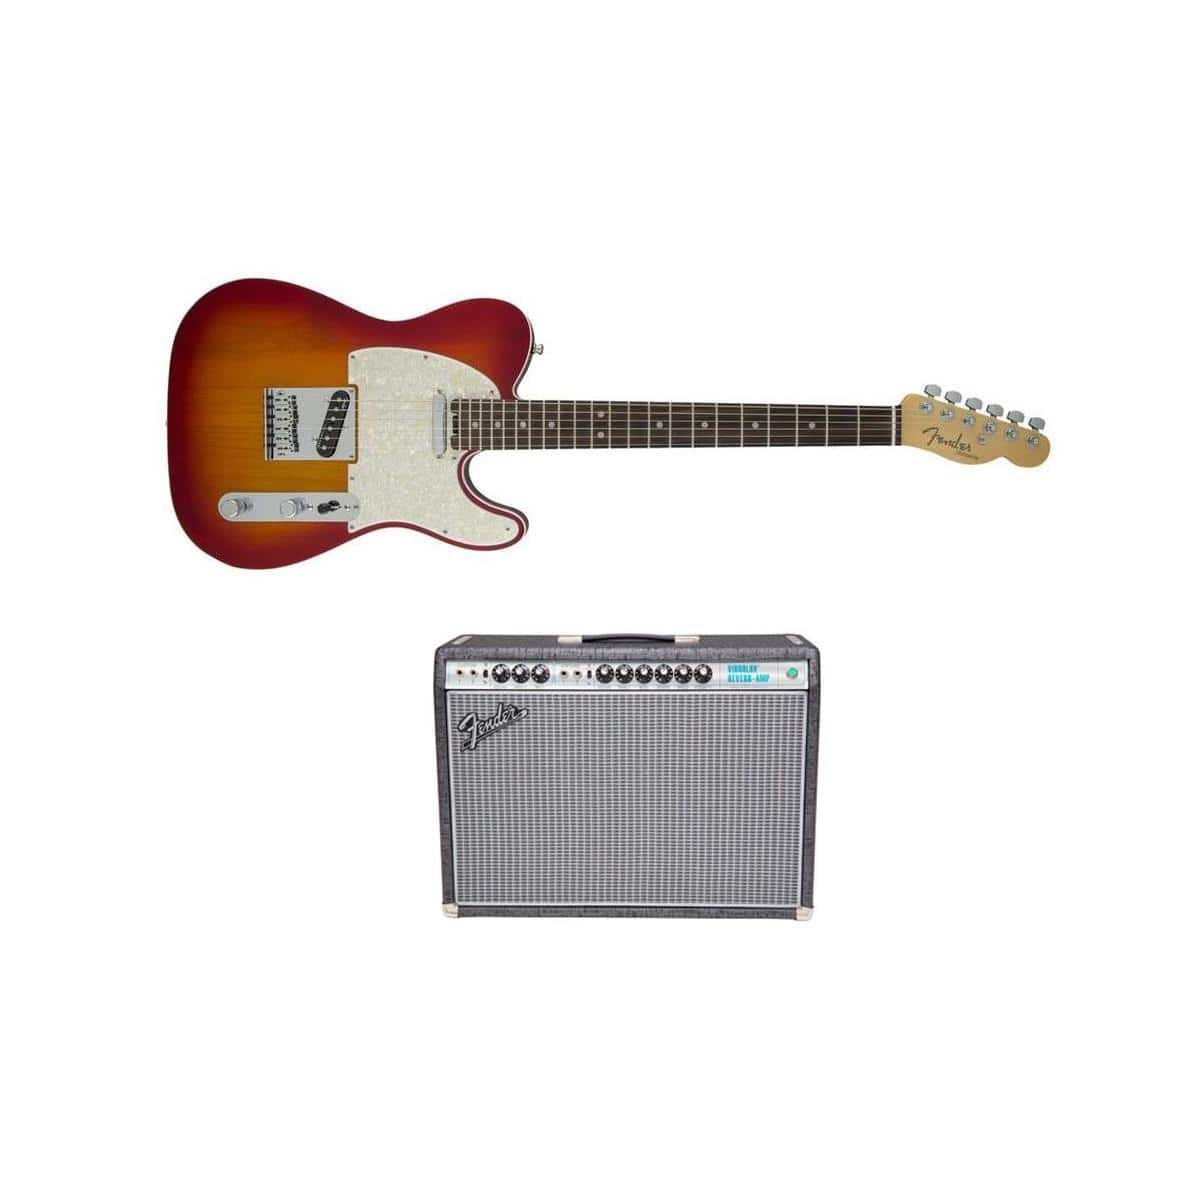 Fender Stratocaster and Telecaster Electric Guitars + Fender Limited Edition 120V '68 Custom Vibrolux Reverb Amp $2099 + free s/h